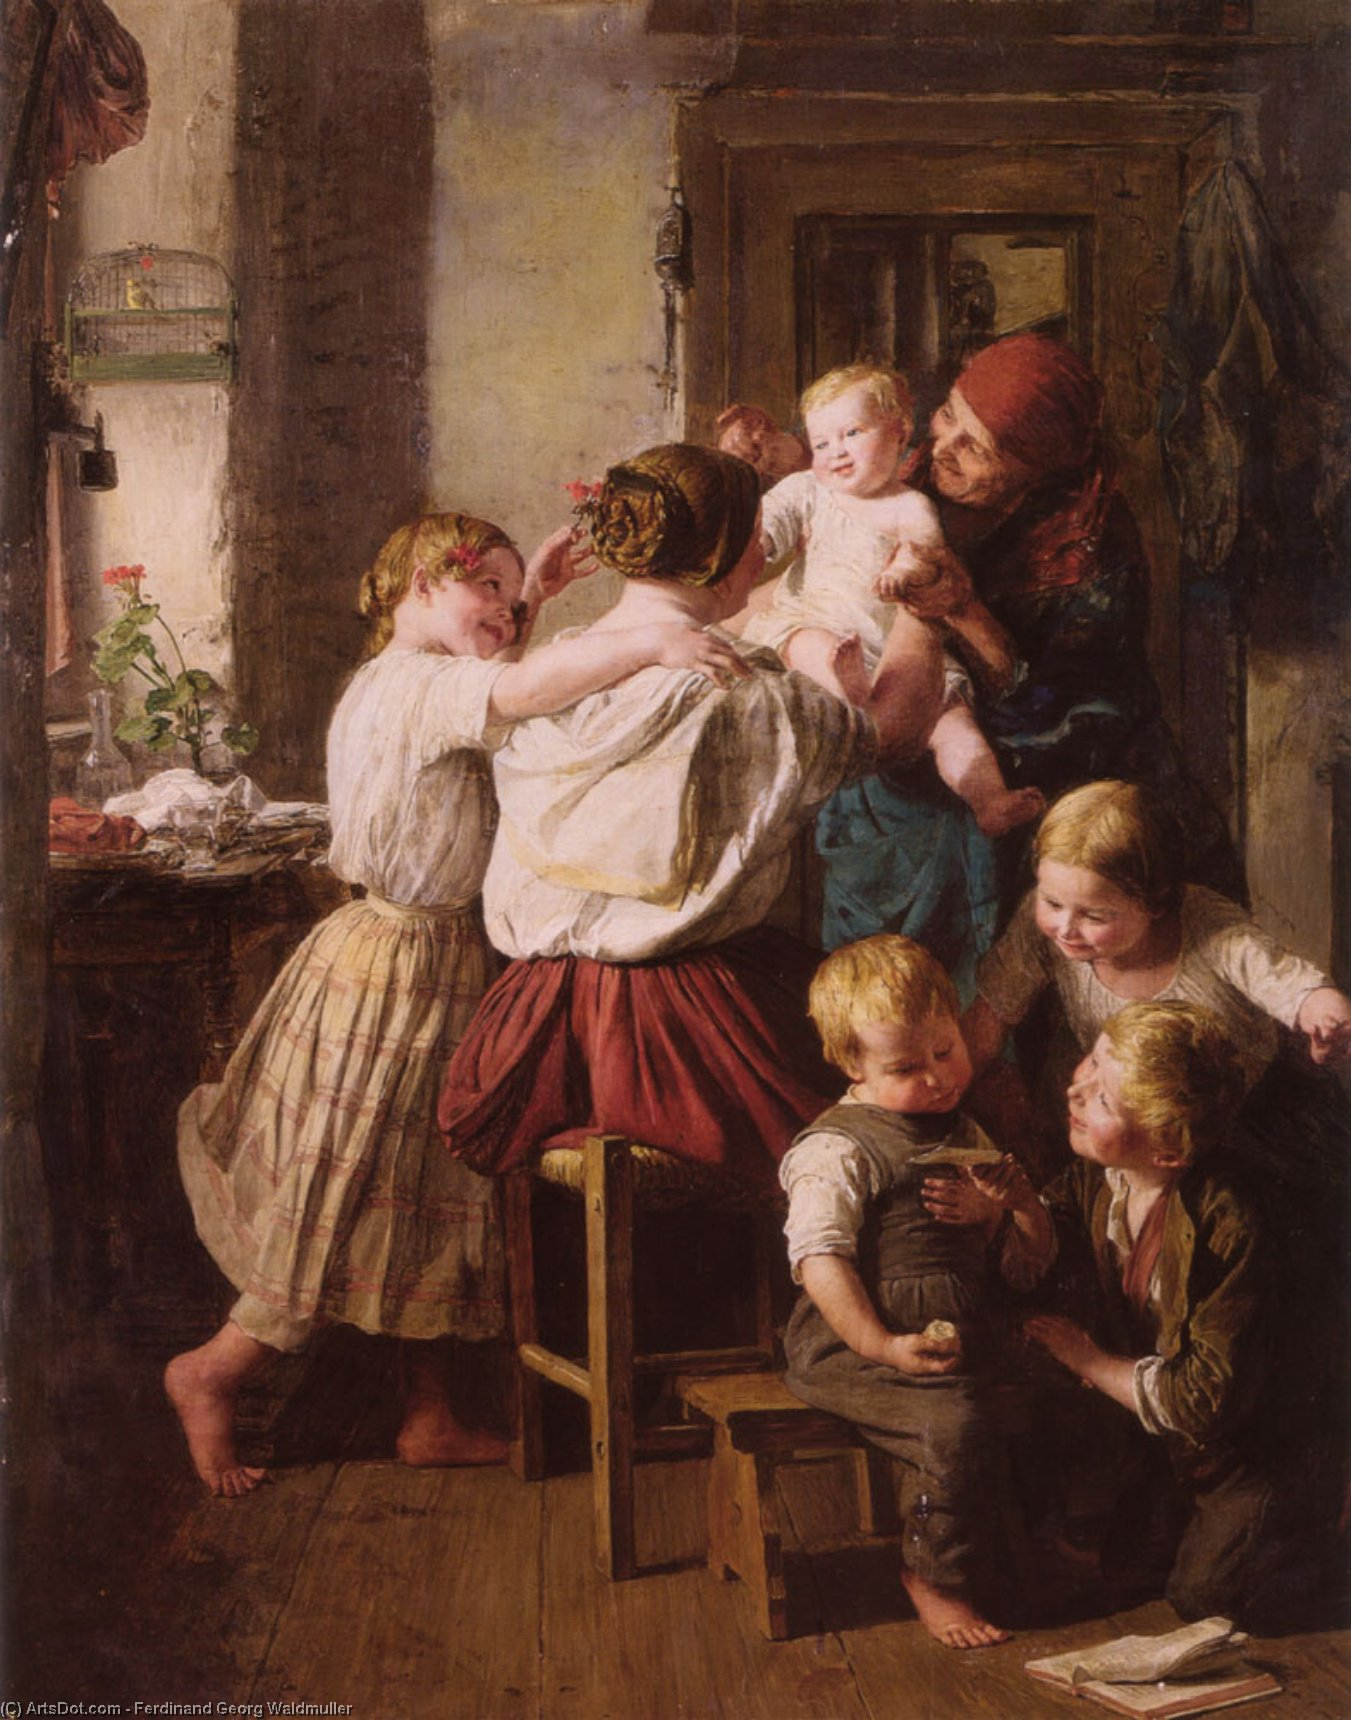 Order Museum Quality Reproductions : Children Making Their Grandmother a Present on Her Name Day by Ferdinand Georg Waldmuller (1793-1865, Austria) | ArtsDot.com